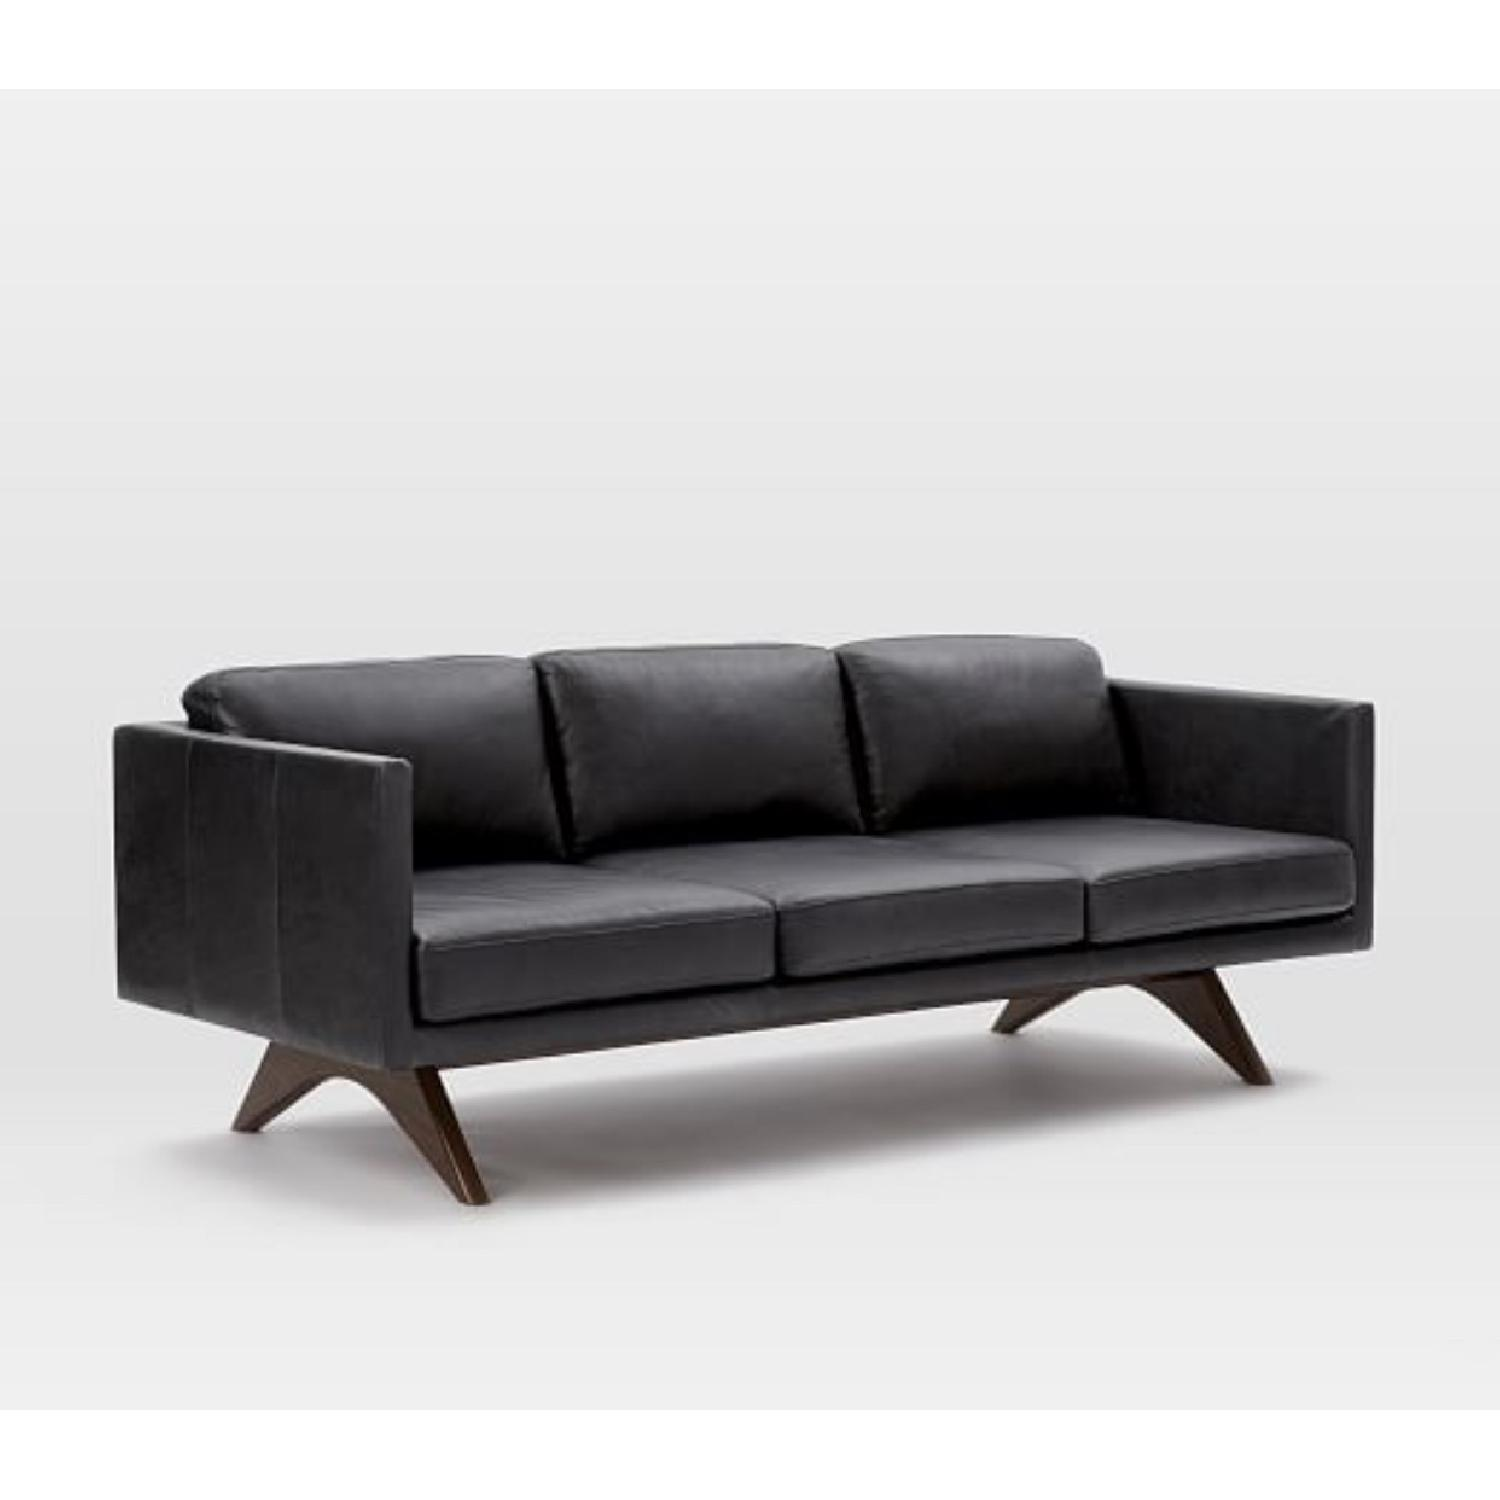 West Elm Brooklyn Down-Filled Leather Sofa - image-0